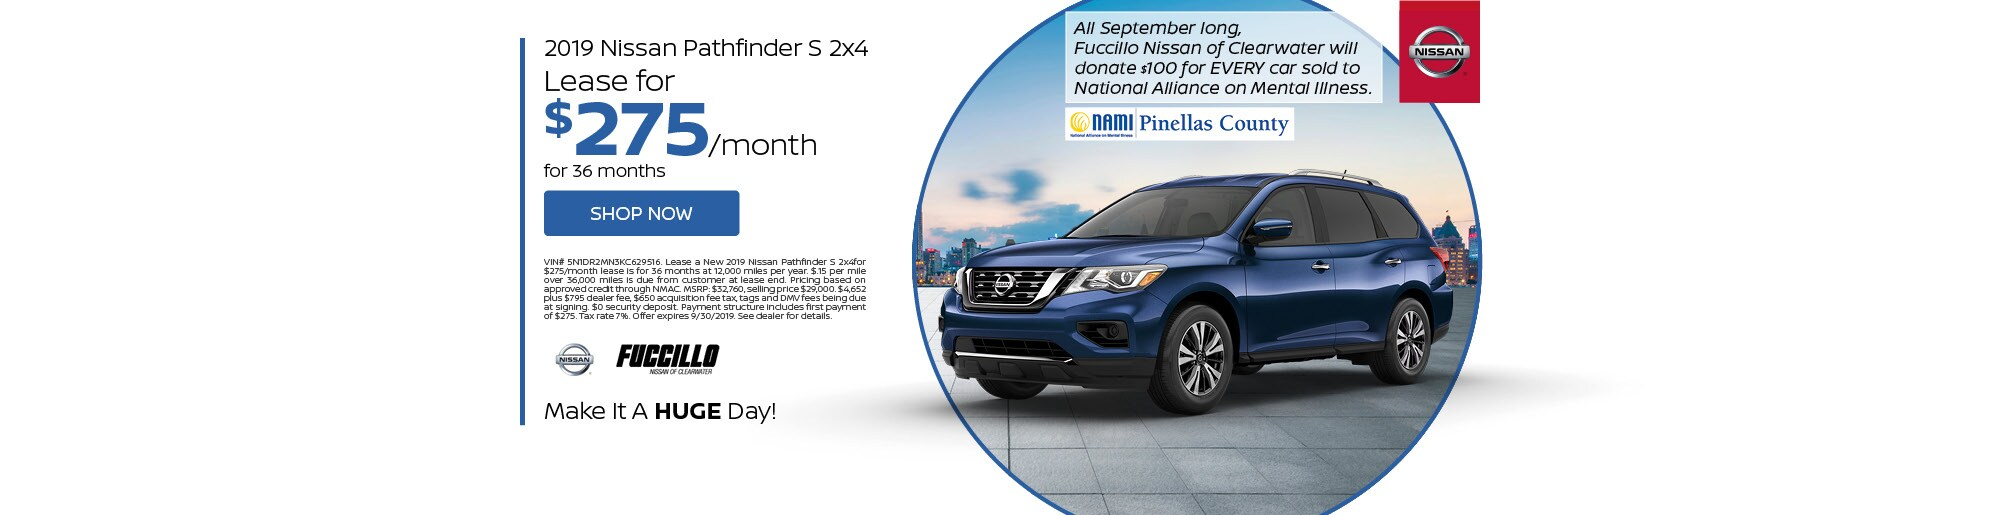 Fuccillo Nissan of Clearwater | Nissan Dealership in